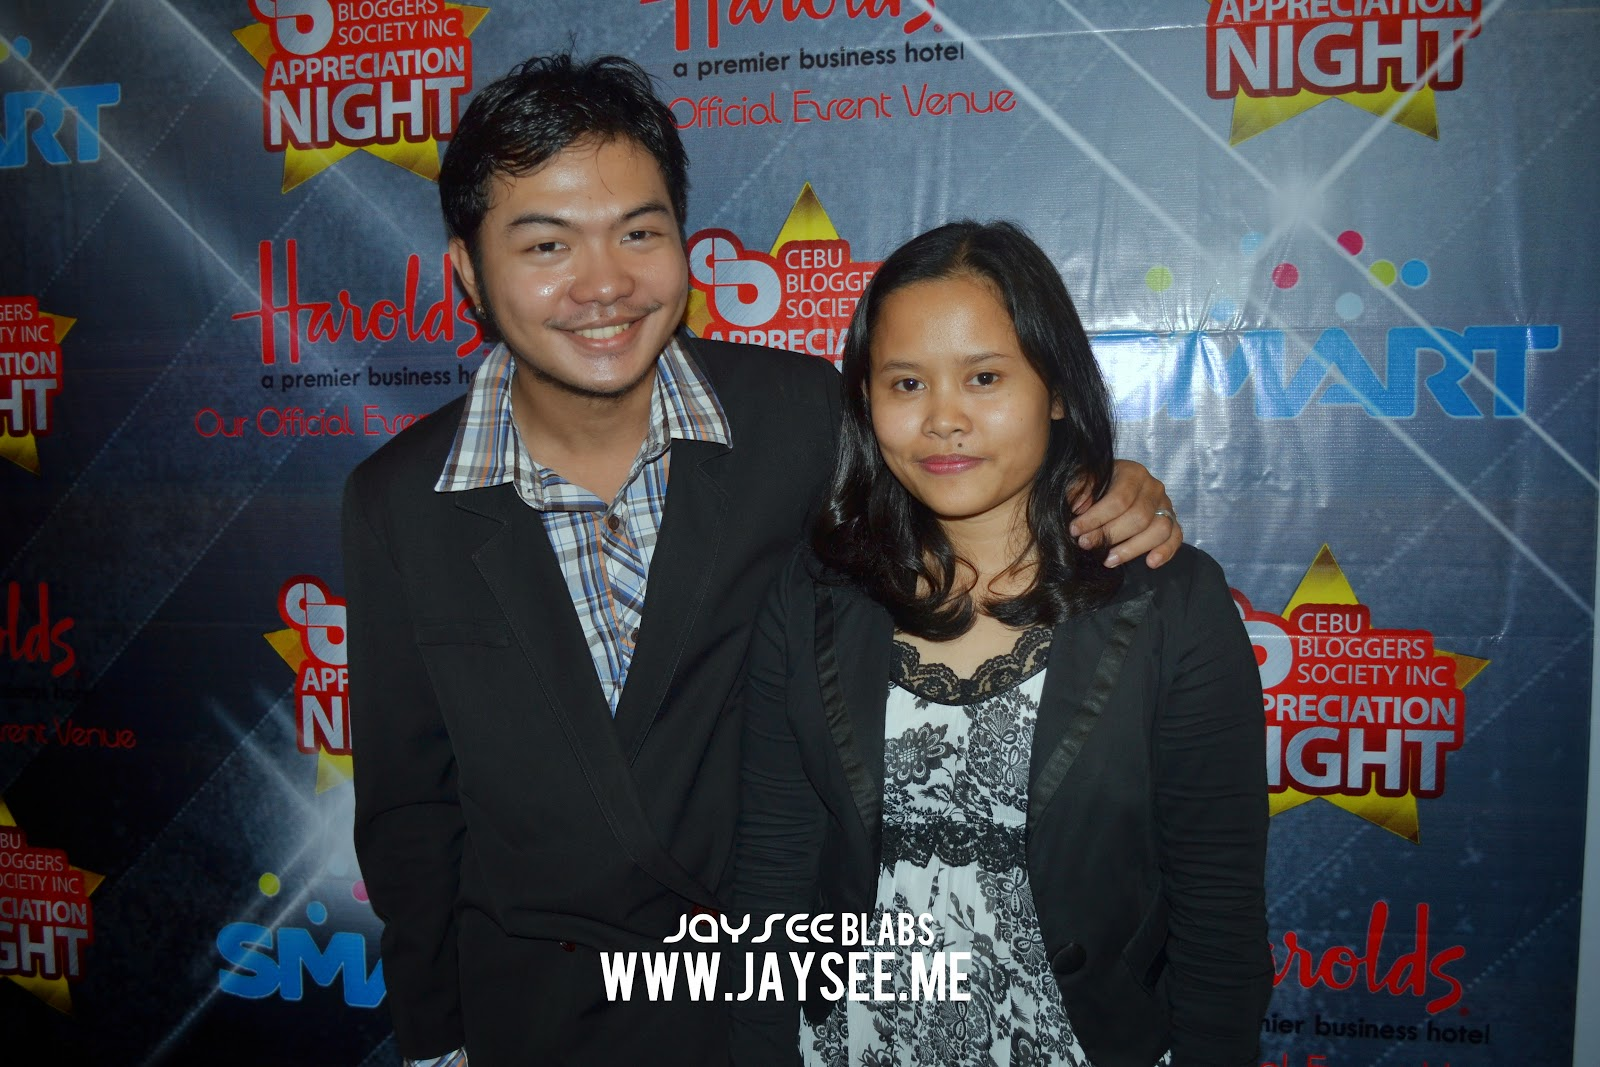 jaysee pingkian jayseeblabs Smiling with my blogging buddy Chanel Imperial